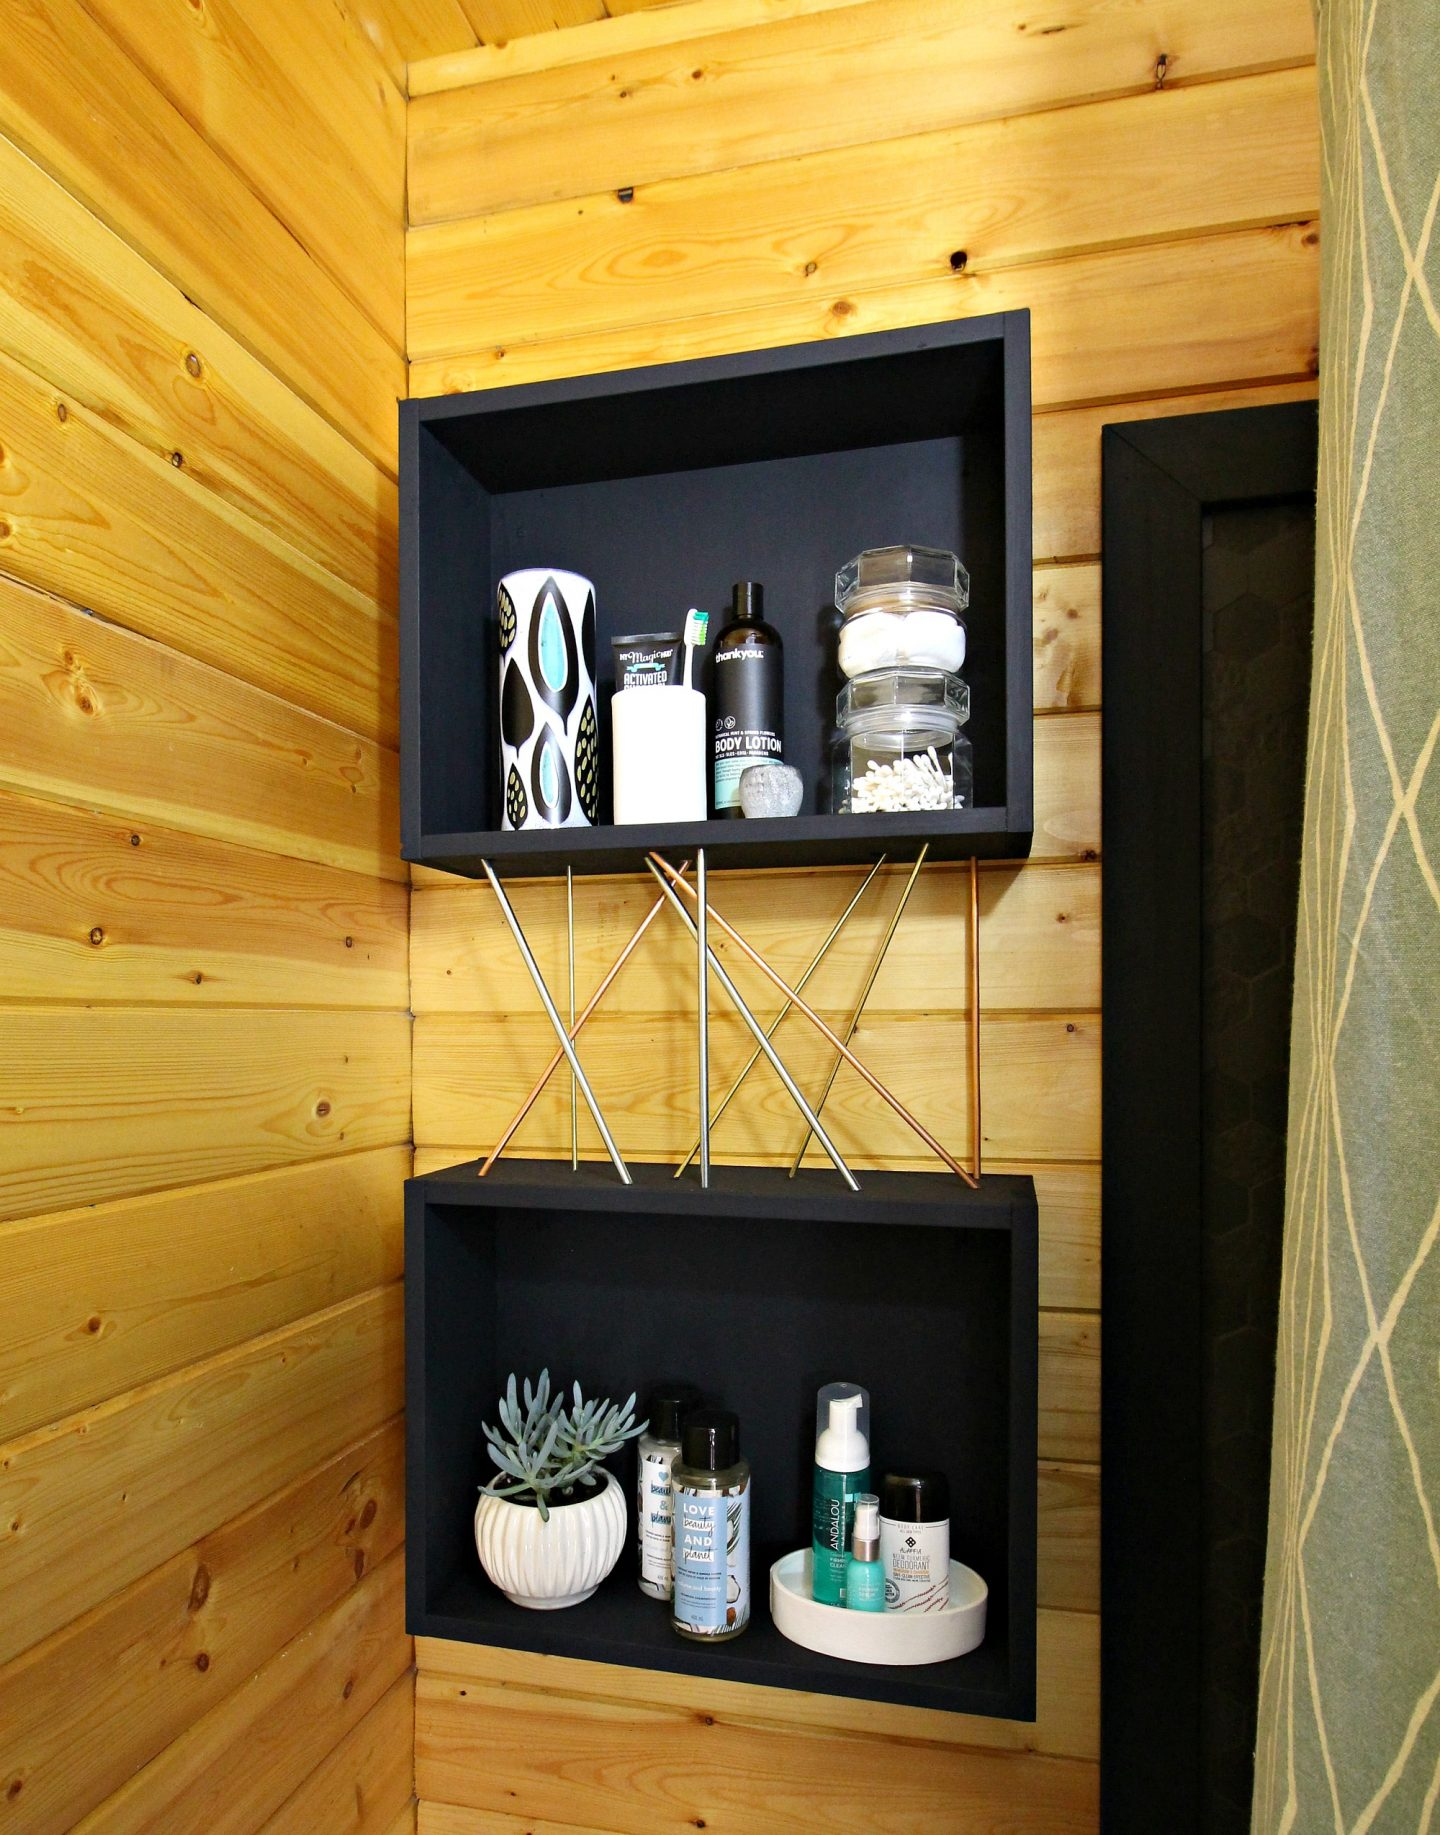 DIY Wood Storage Cubbies with Mid-Century Modern Inspired Metal Details #diy #diystorage #diywoodworking #bunkiebathroom